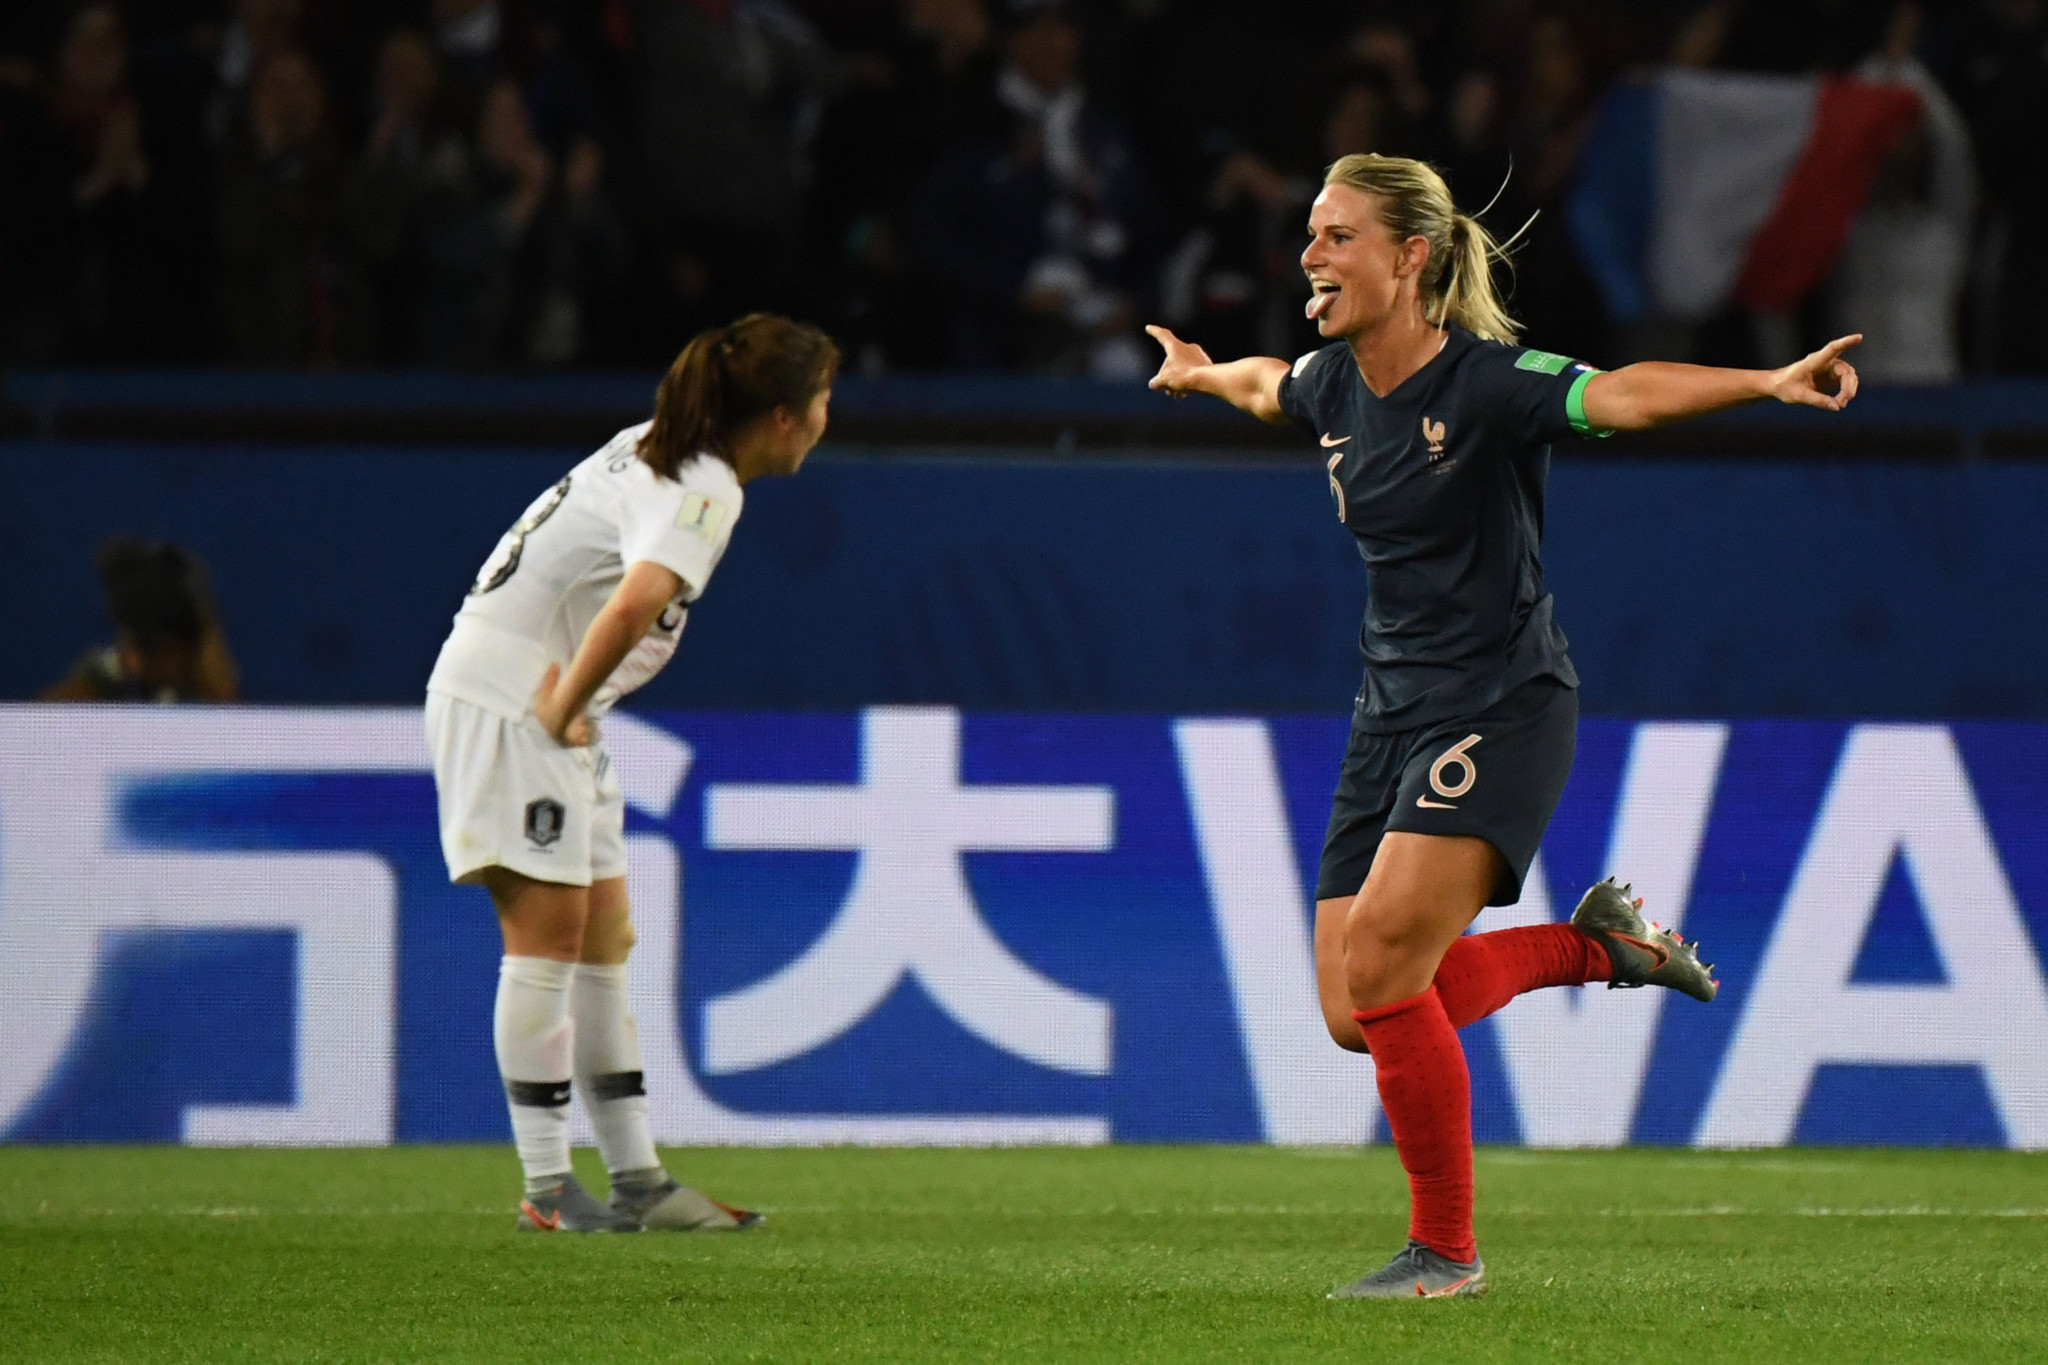 Her goal confirmed France's victory in their opening match as hosts ©Getty Images